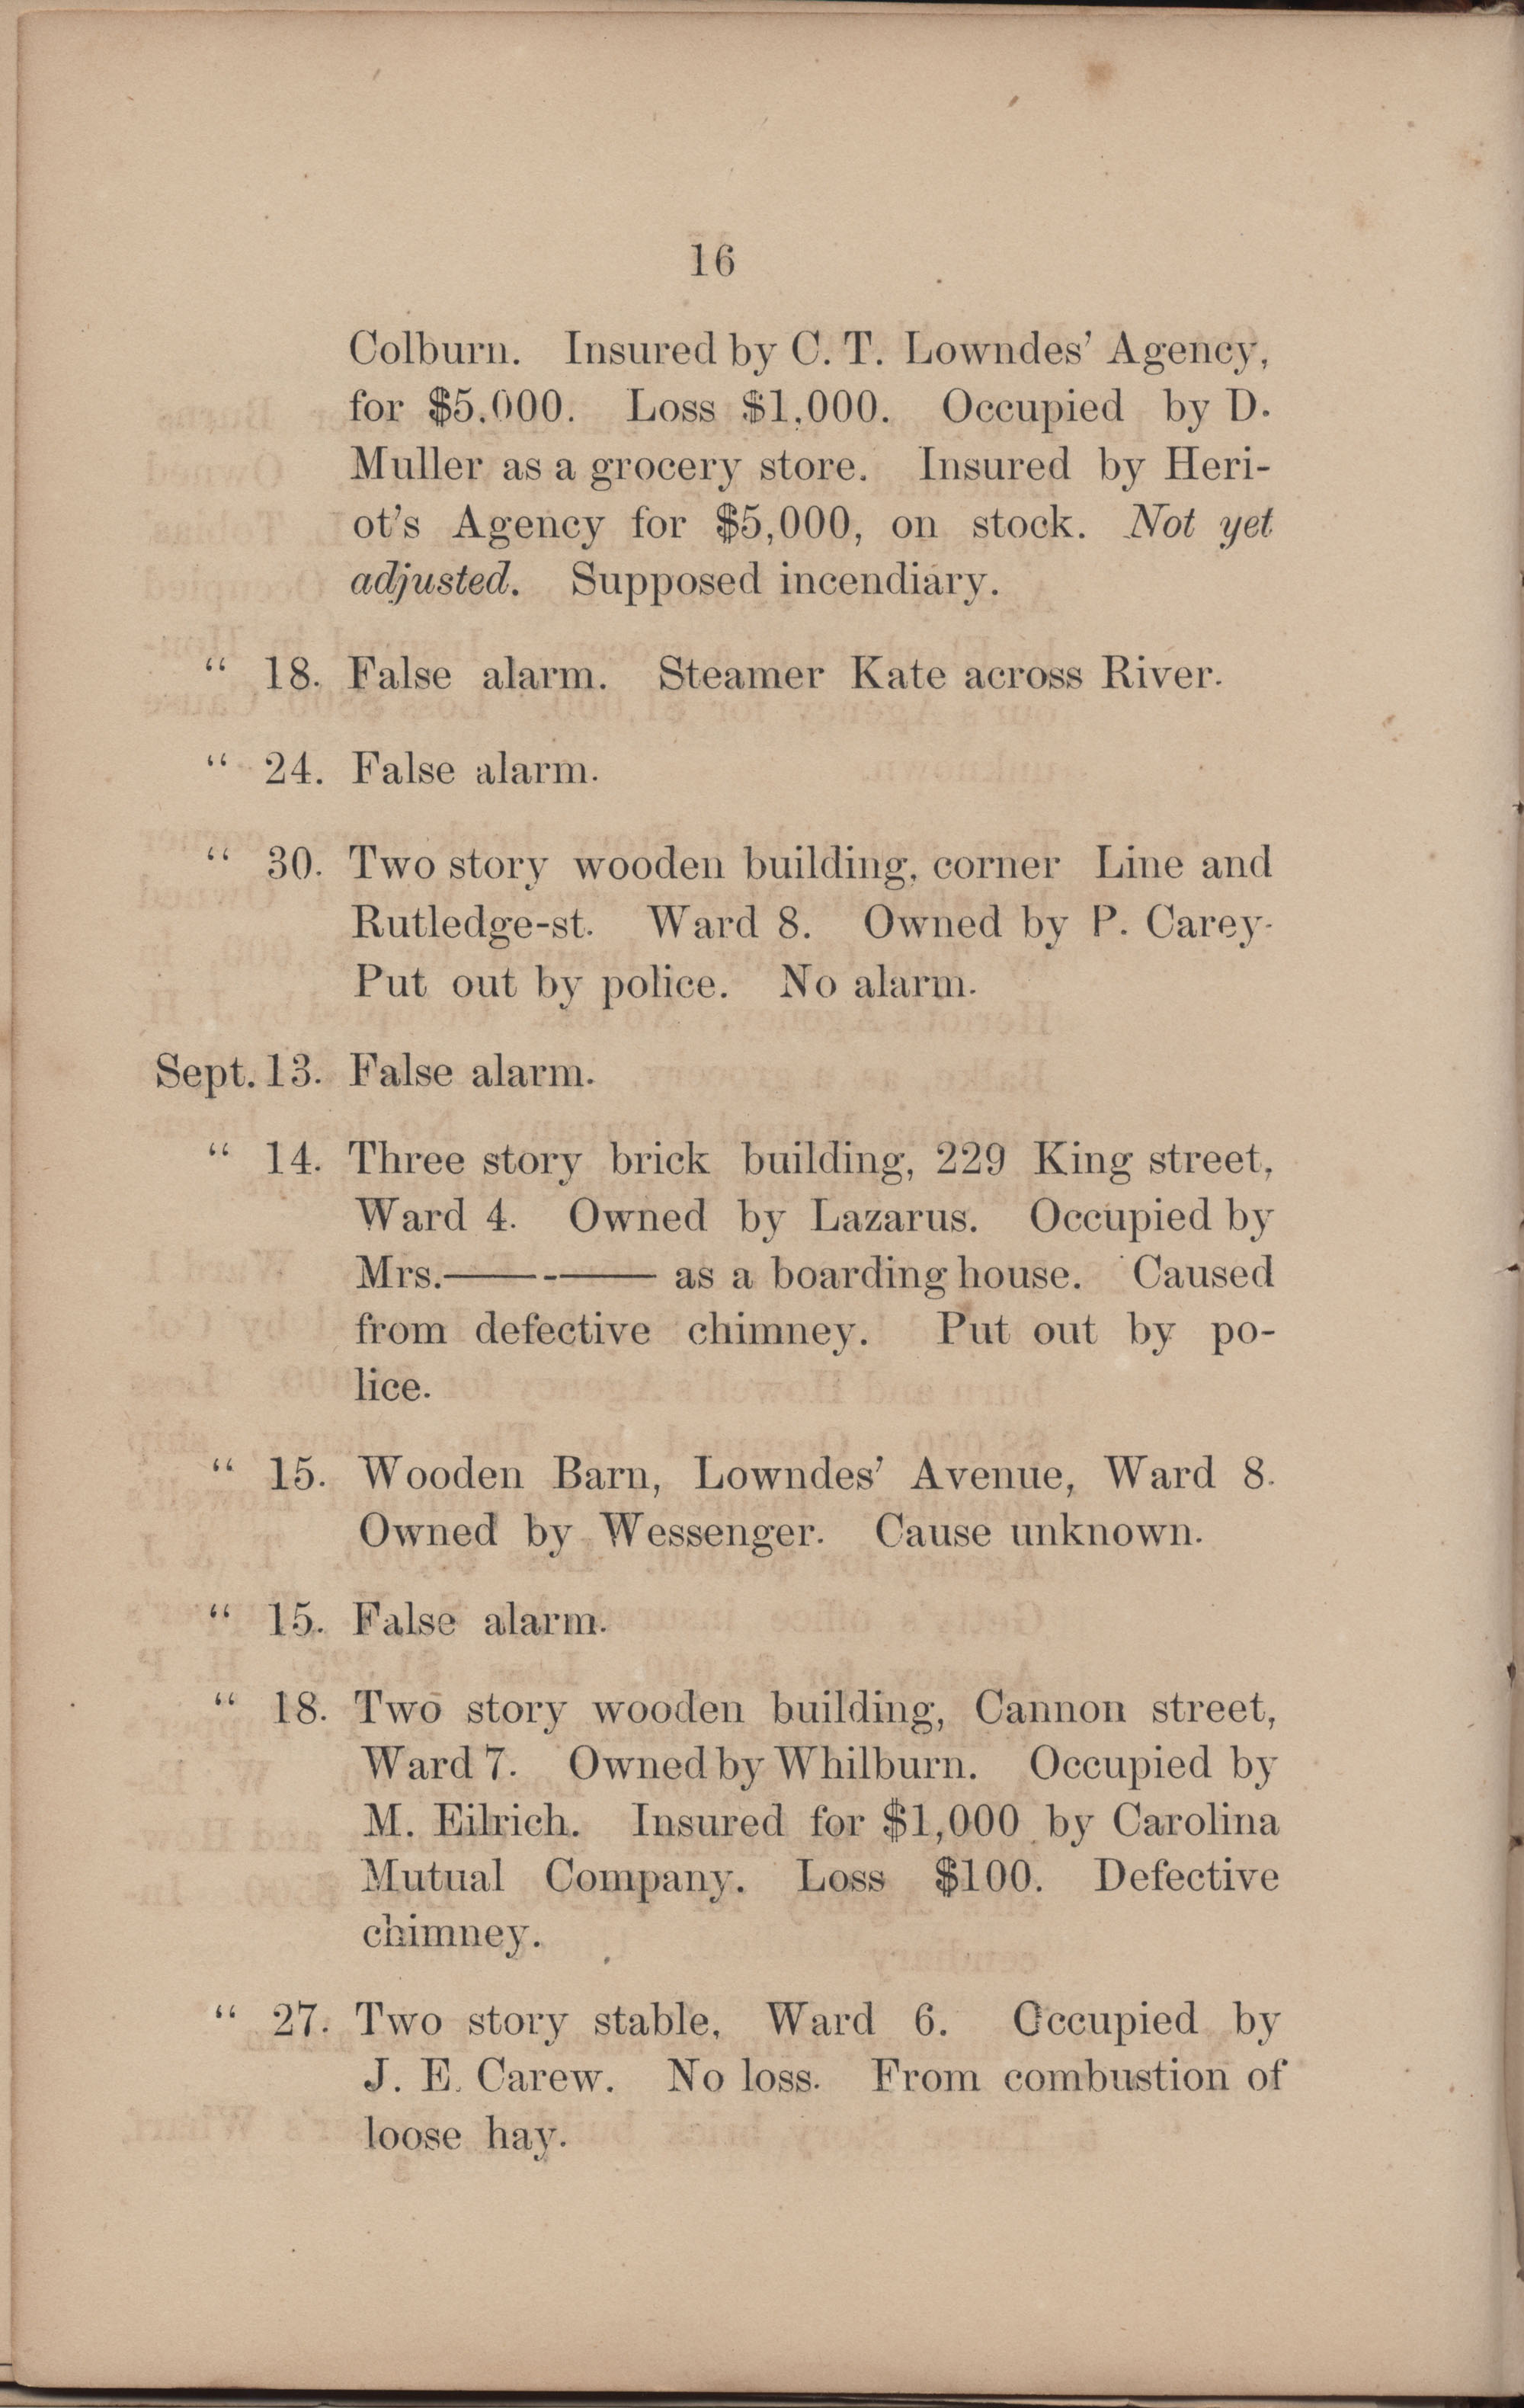 Annual Report of the Chief of the Fire Department of the City of Charleston, page 194